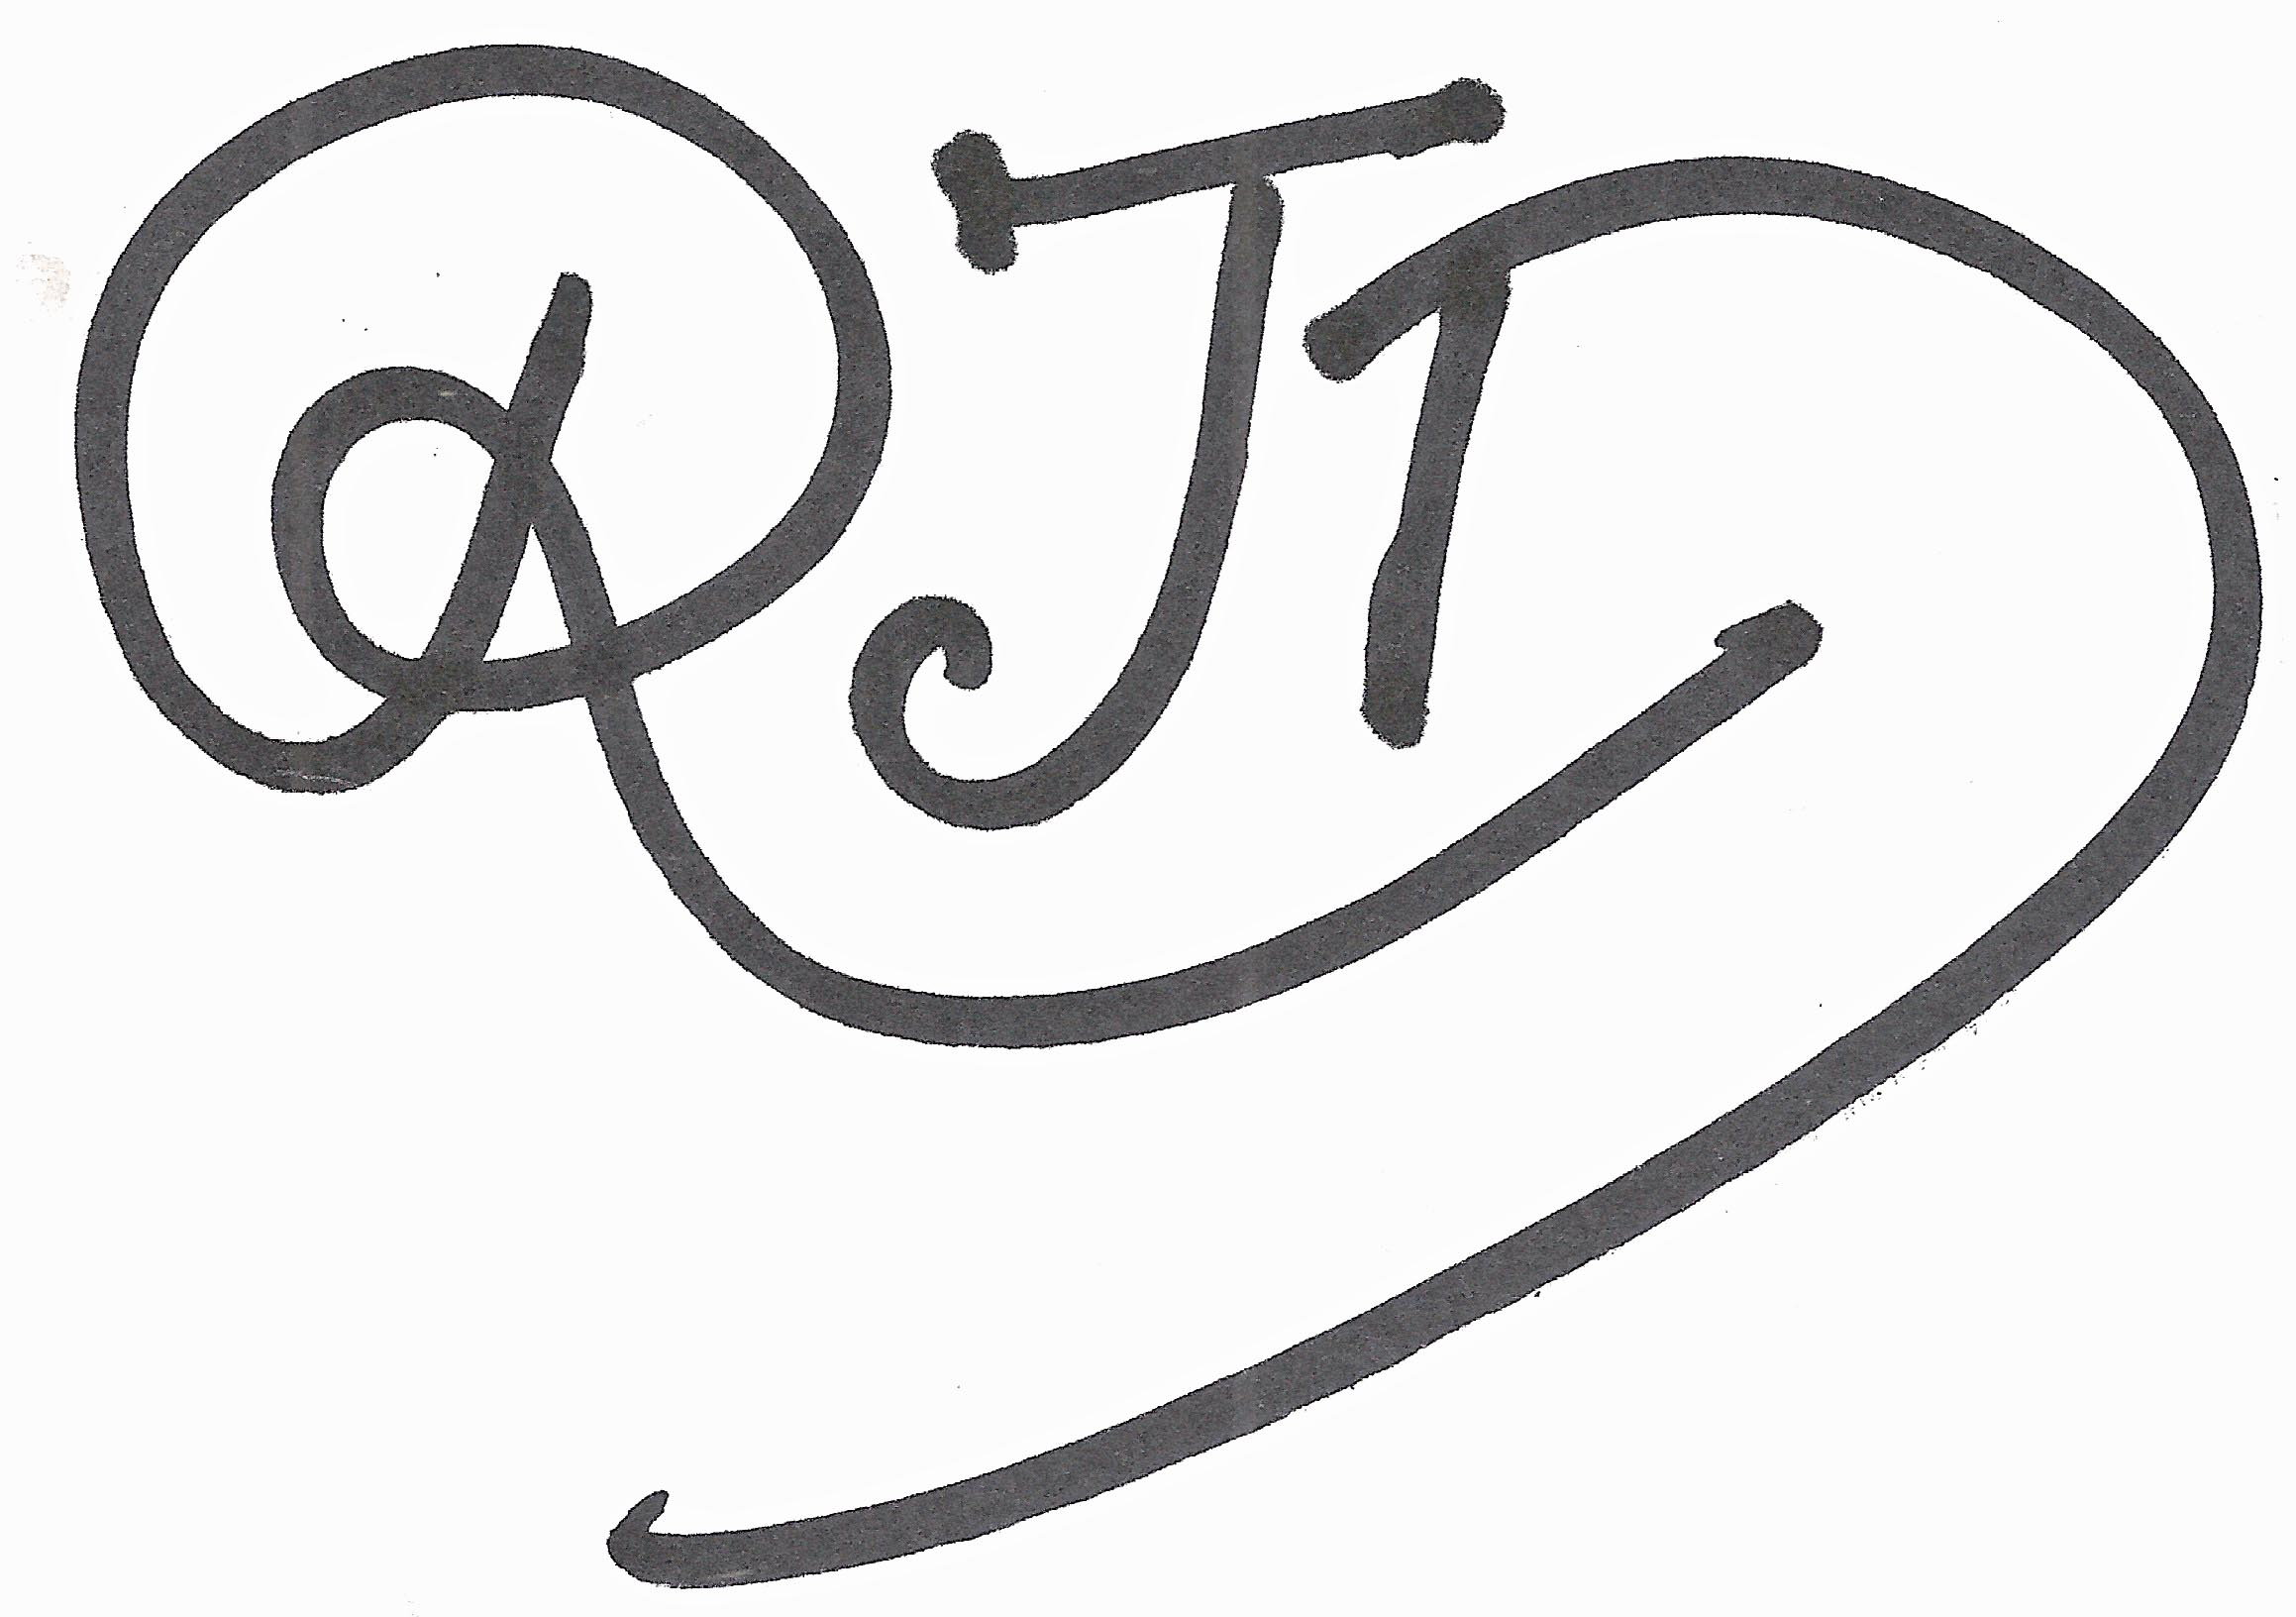 Richard James Digance's Signature